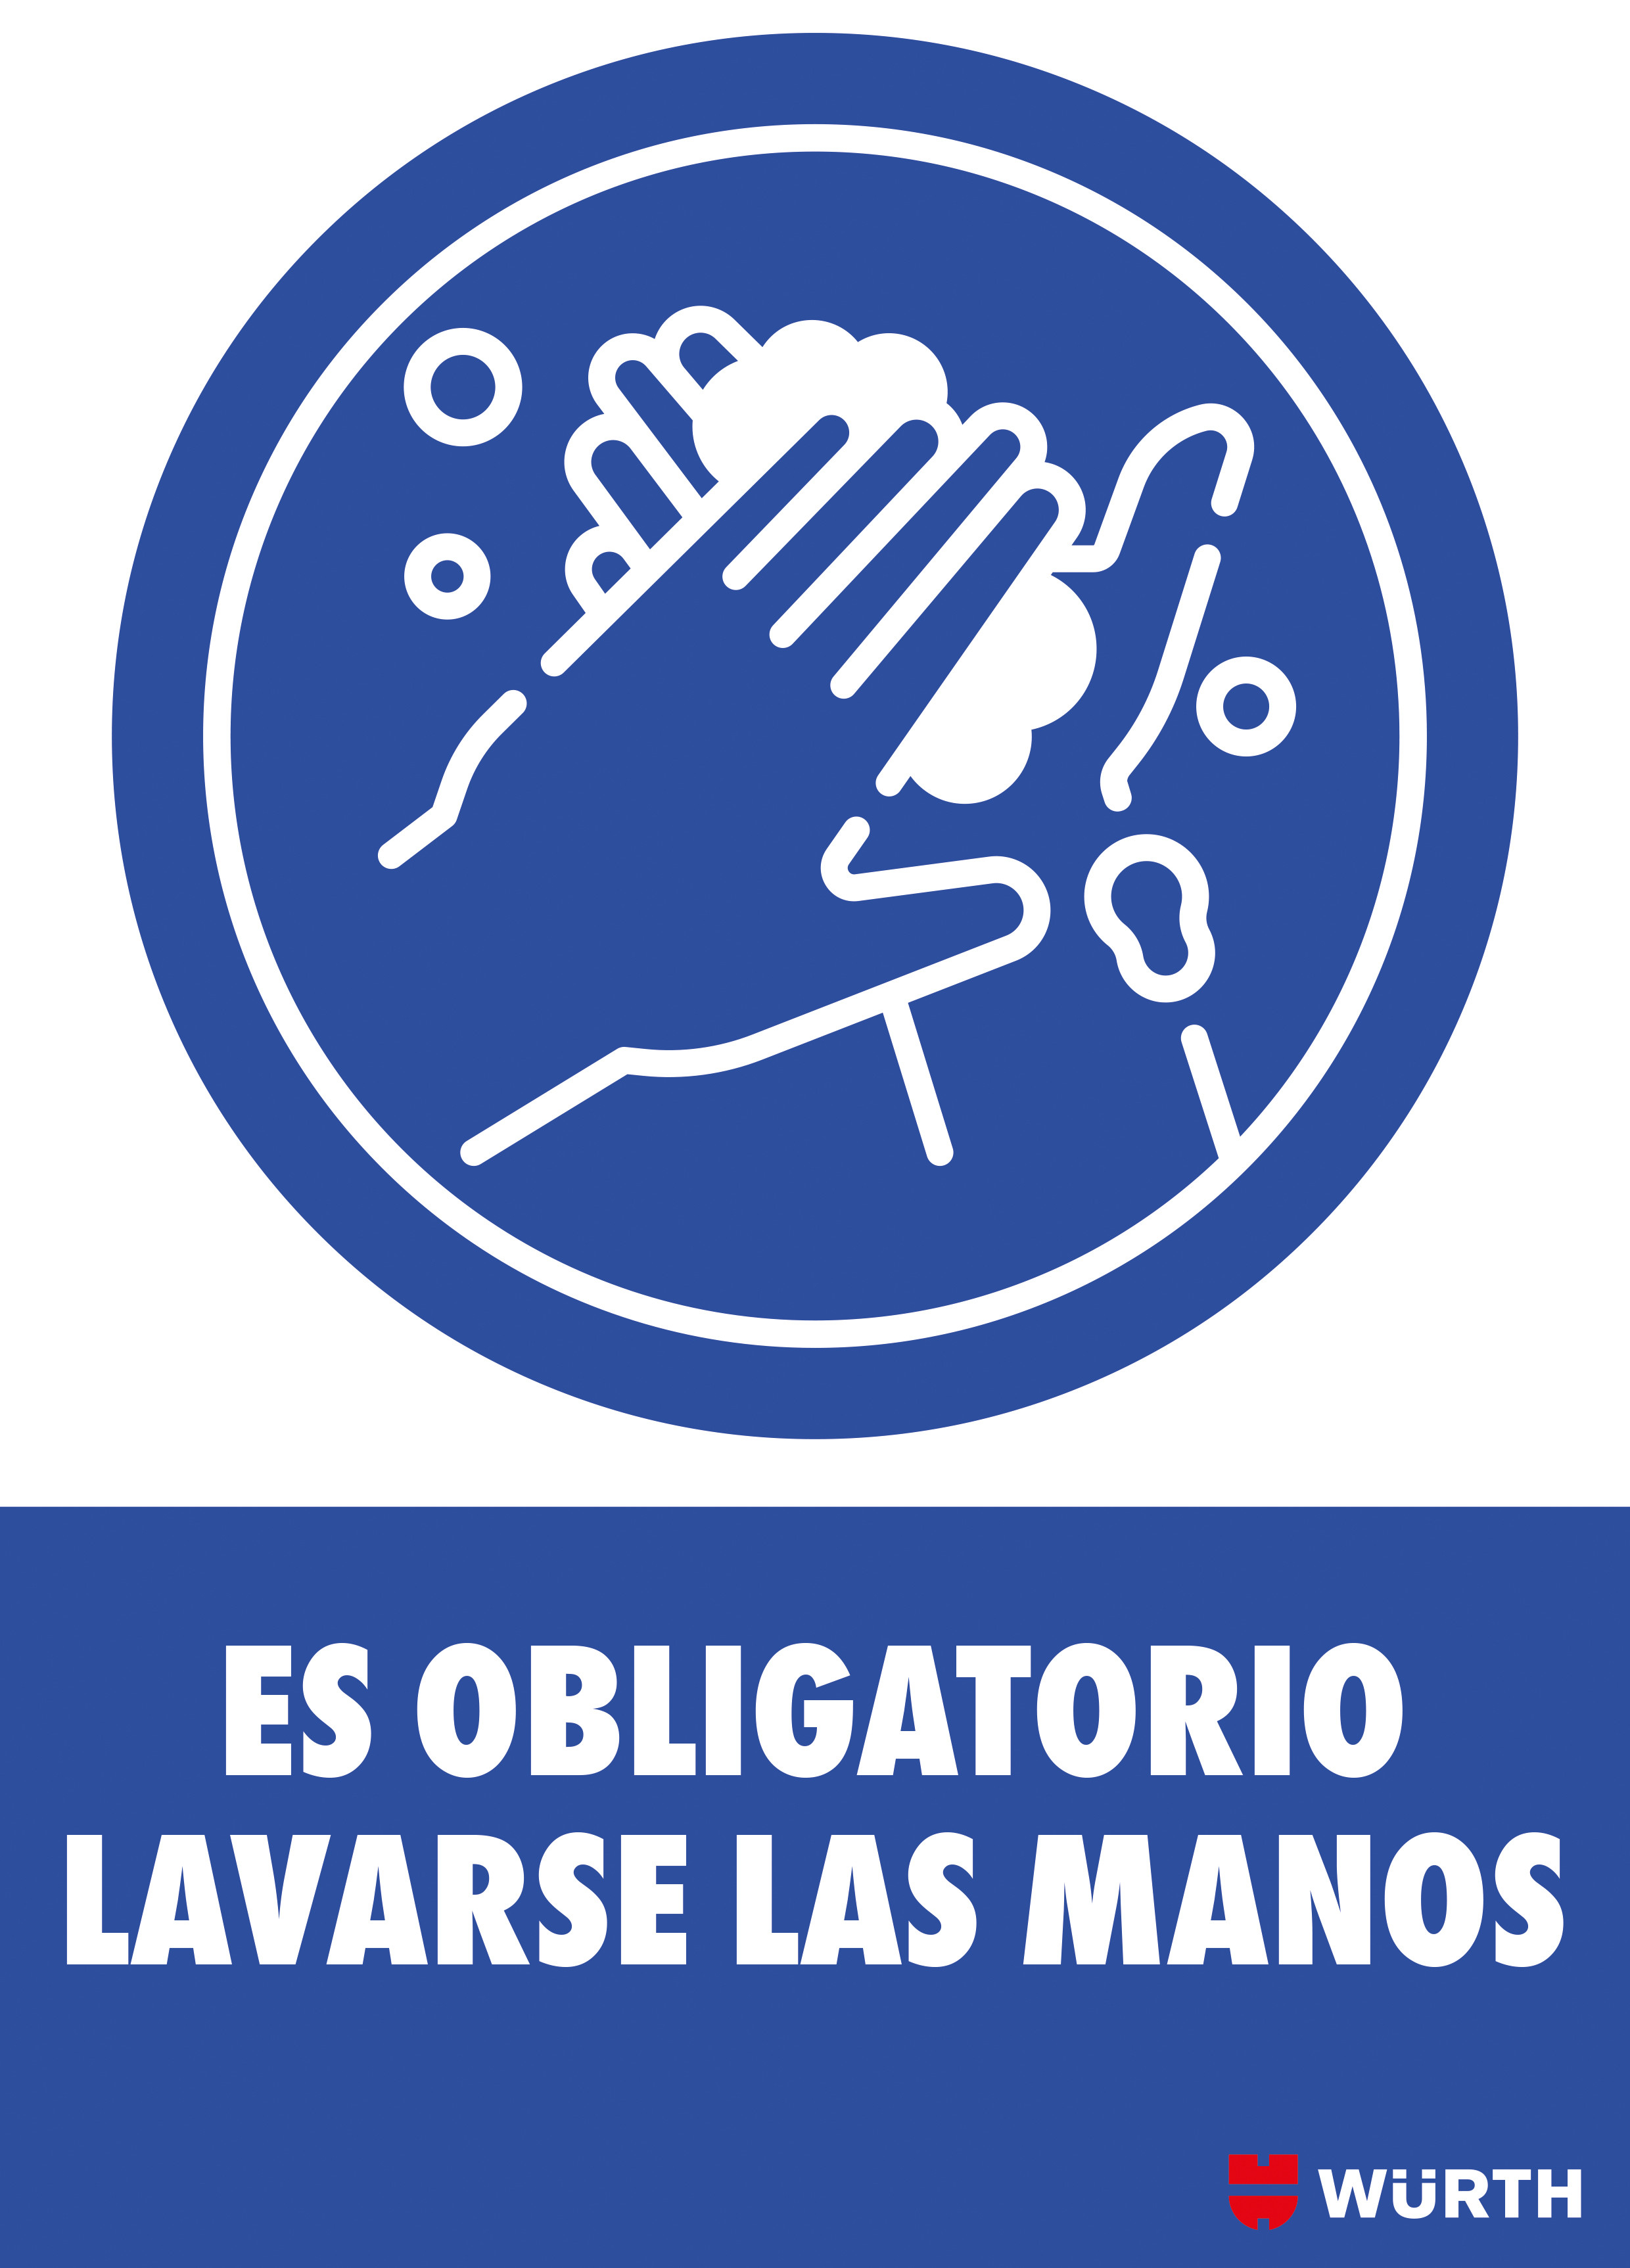 CARTEL OBLIGATORIO LAVARSE MANOS